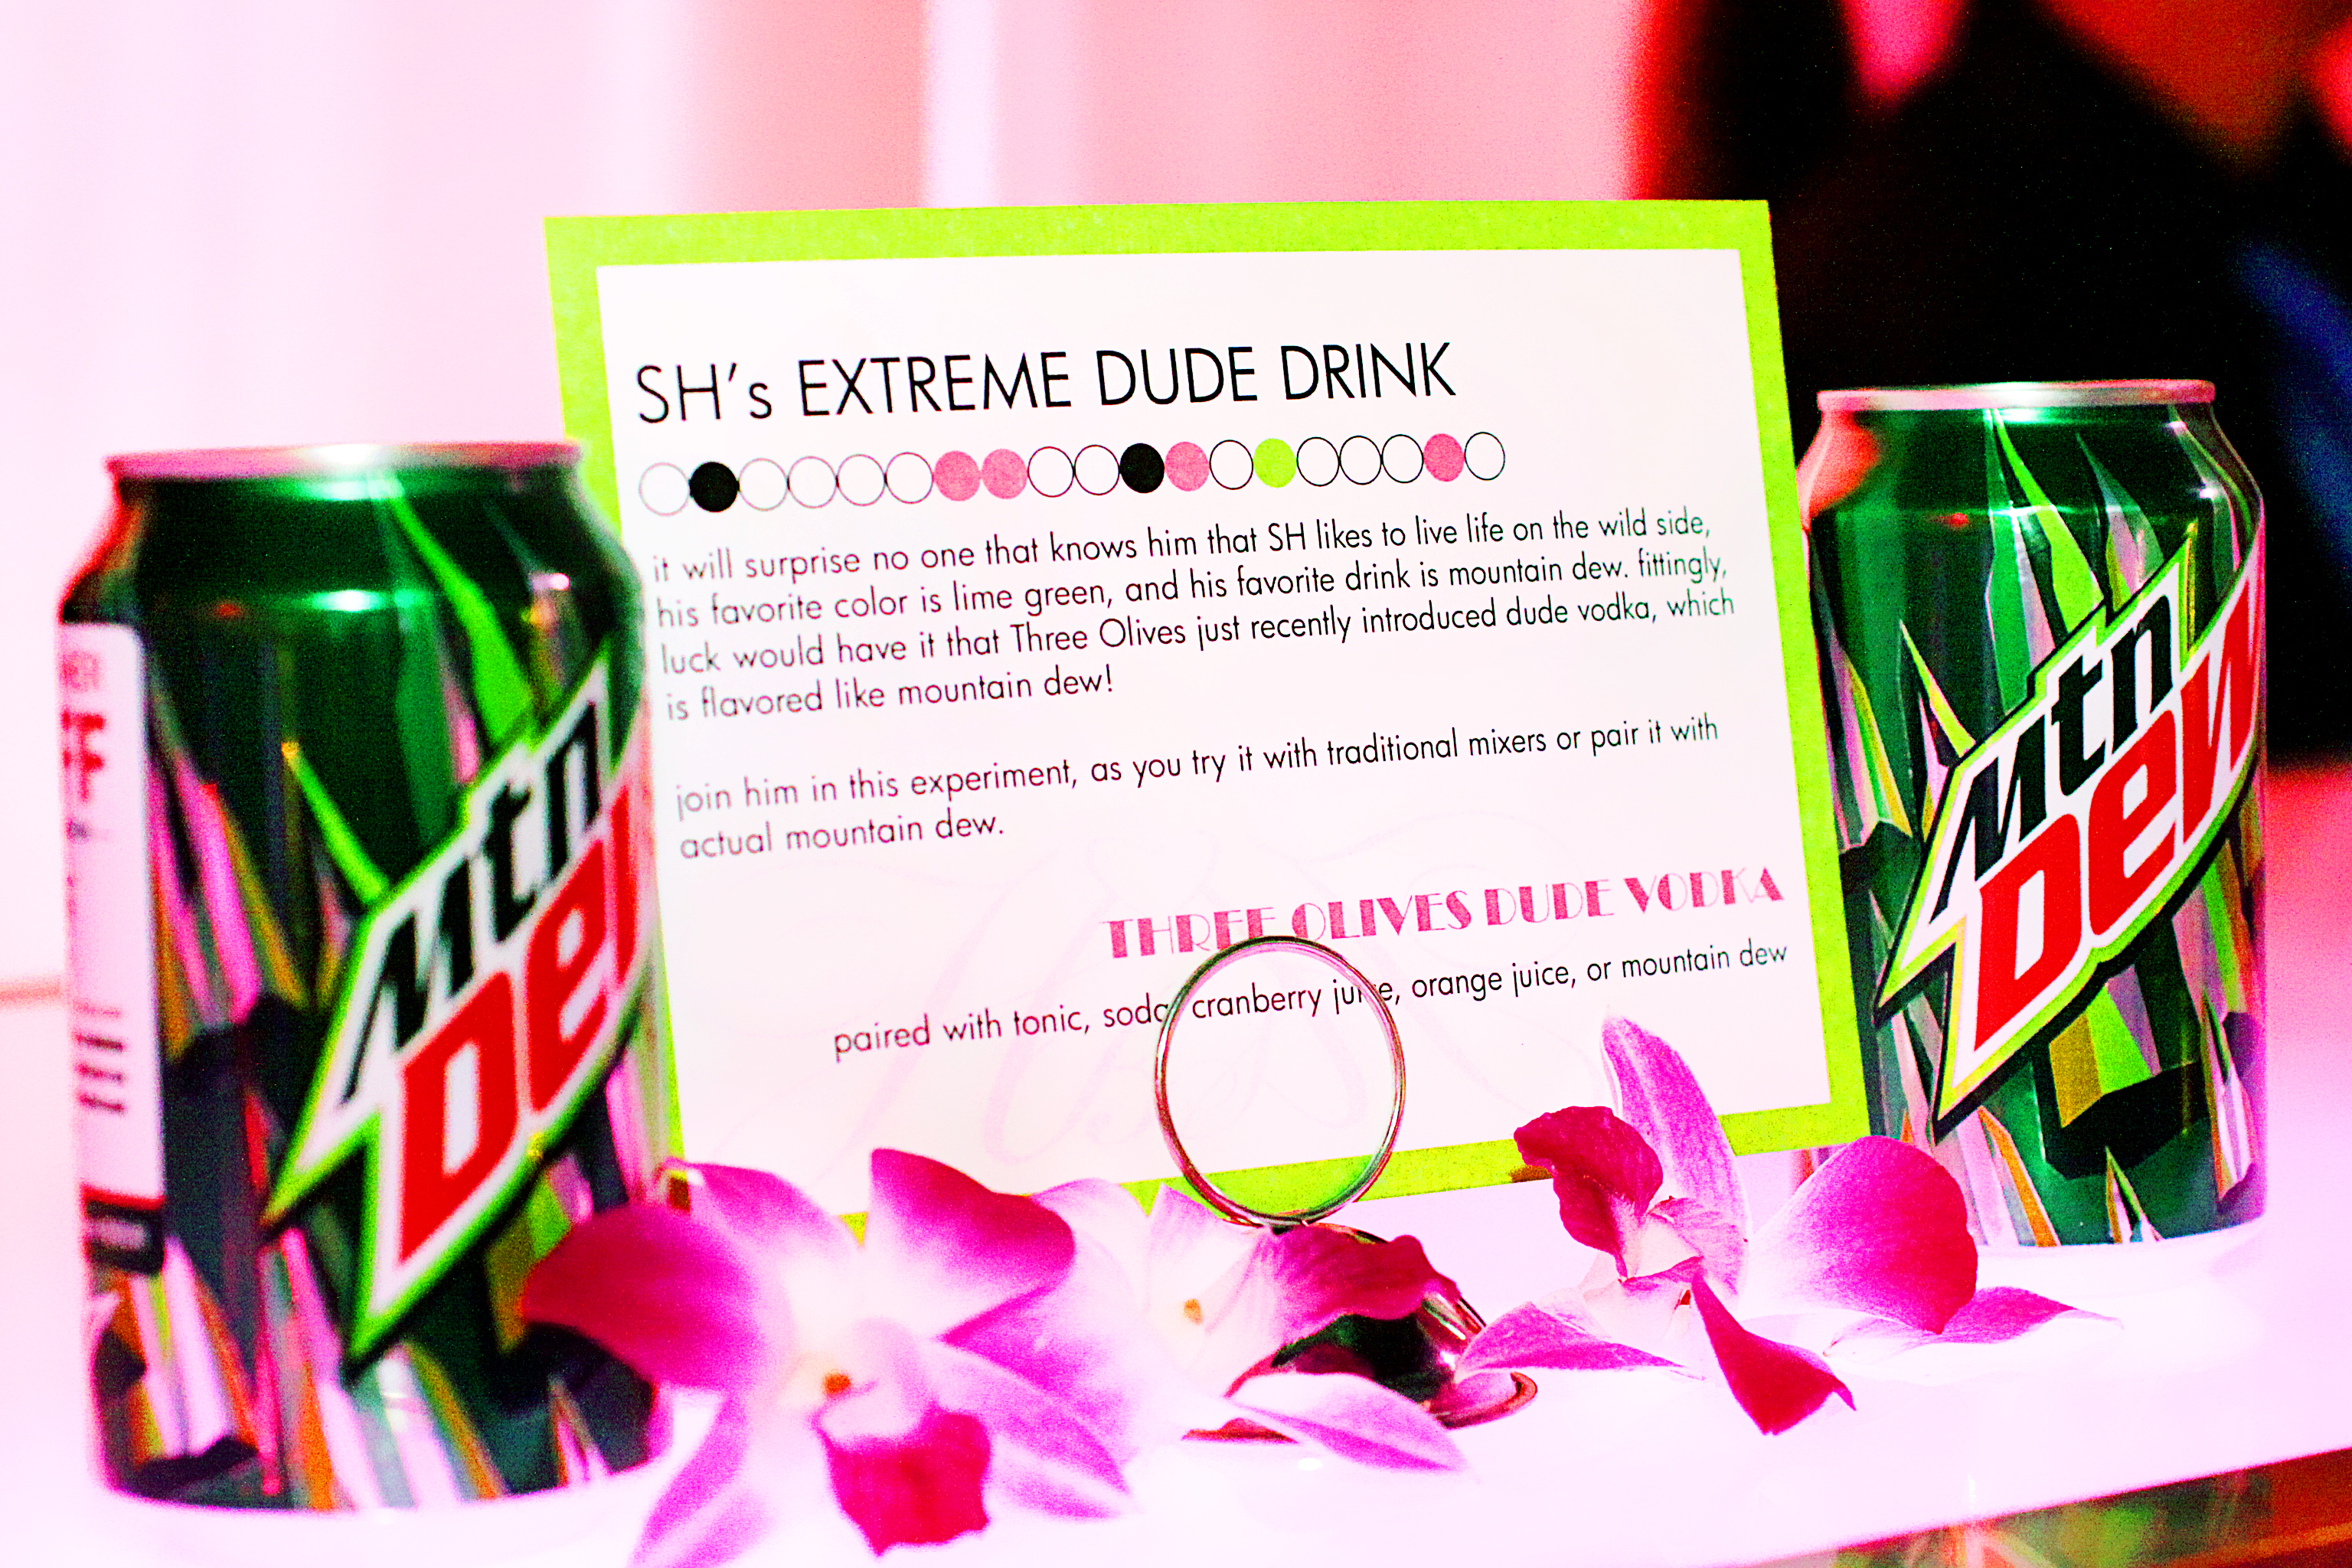 Wedding Specialty Drink Dew Vodka